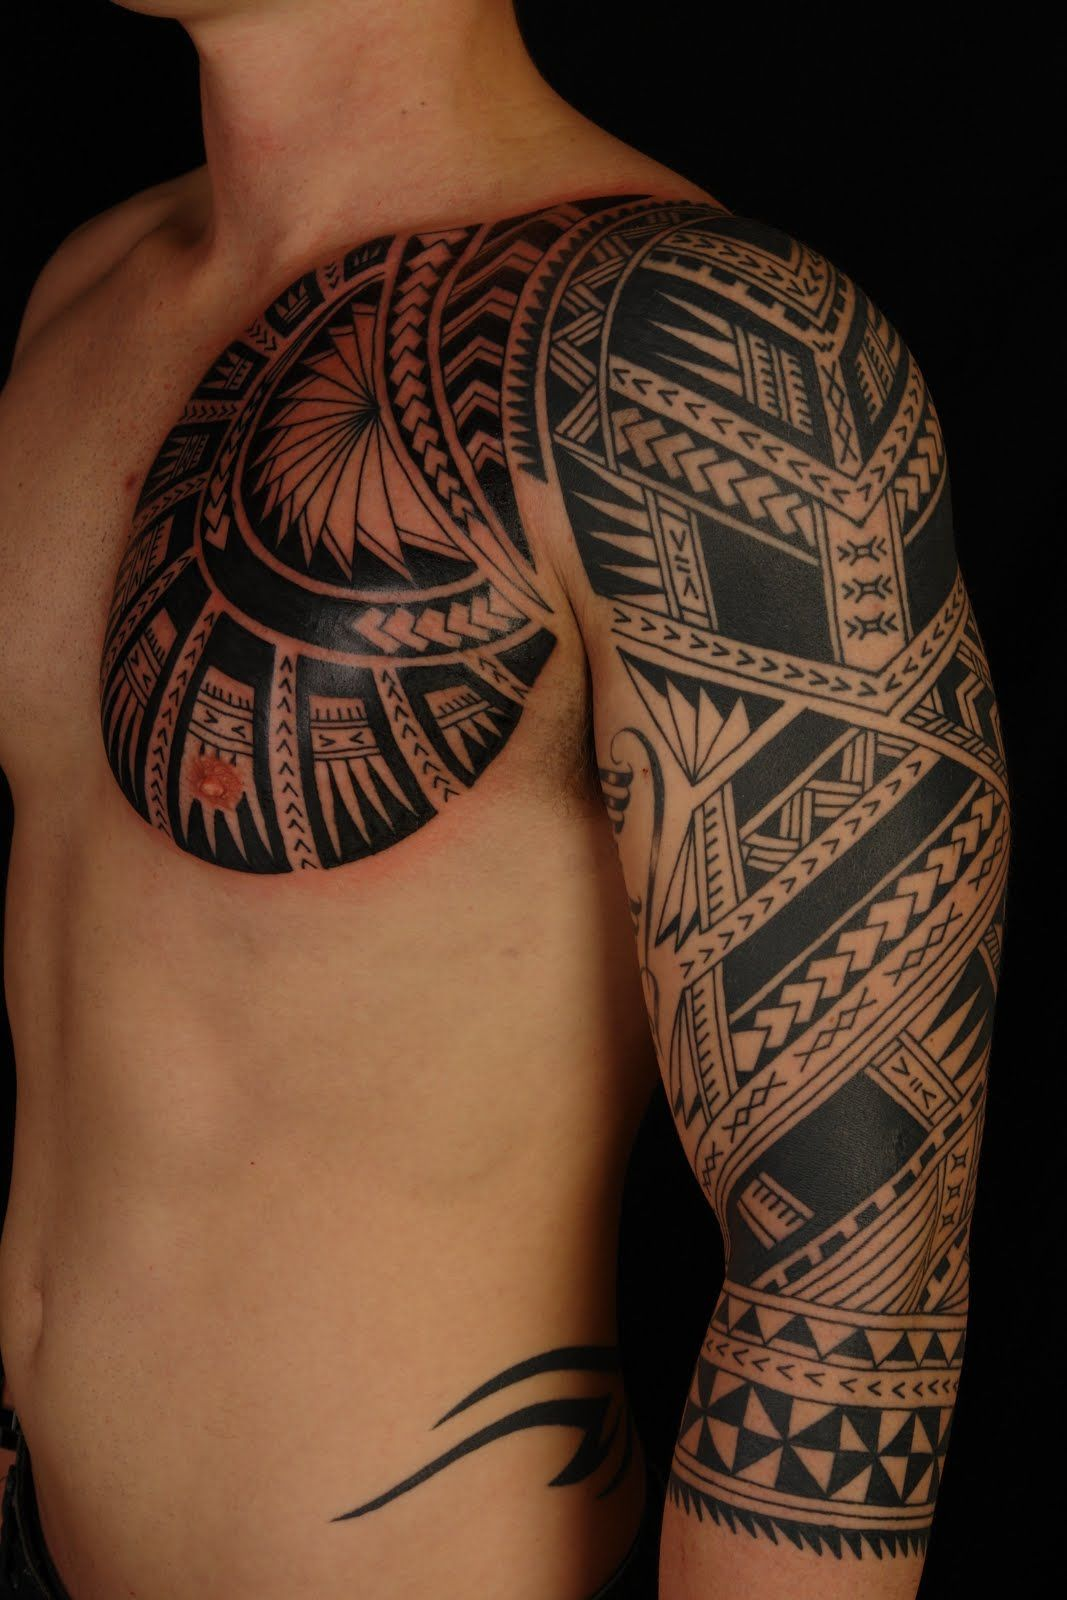 Body Art World Tattoos Maori Tattoo Art And Traditional: Pin By Jay Wholley On Body Art